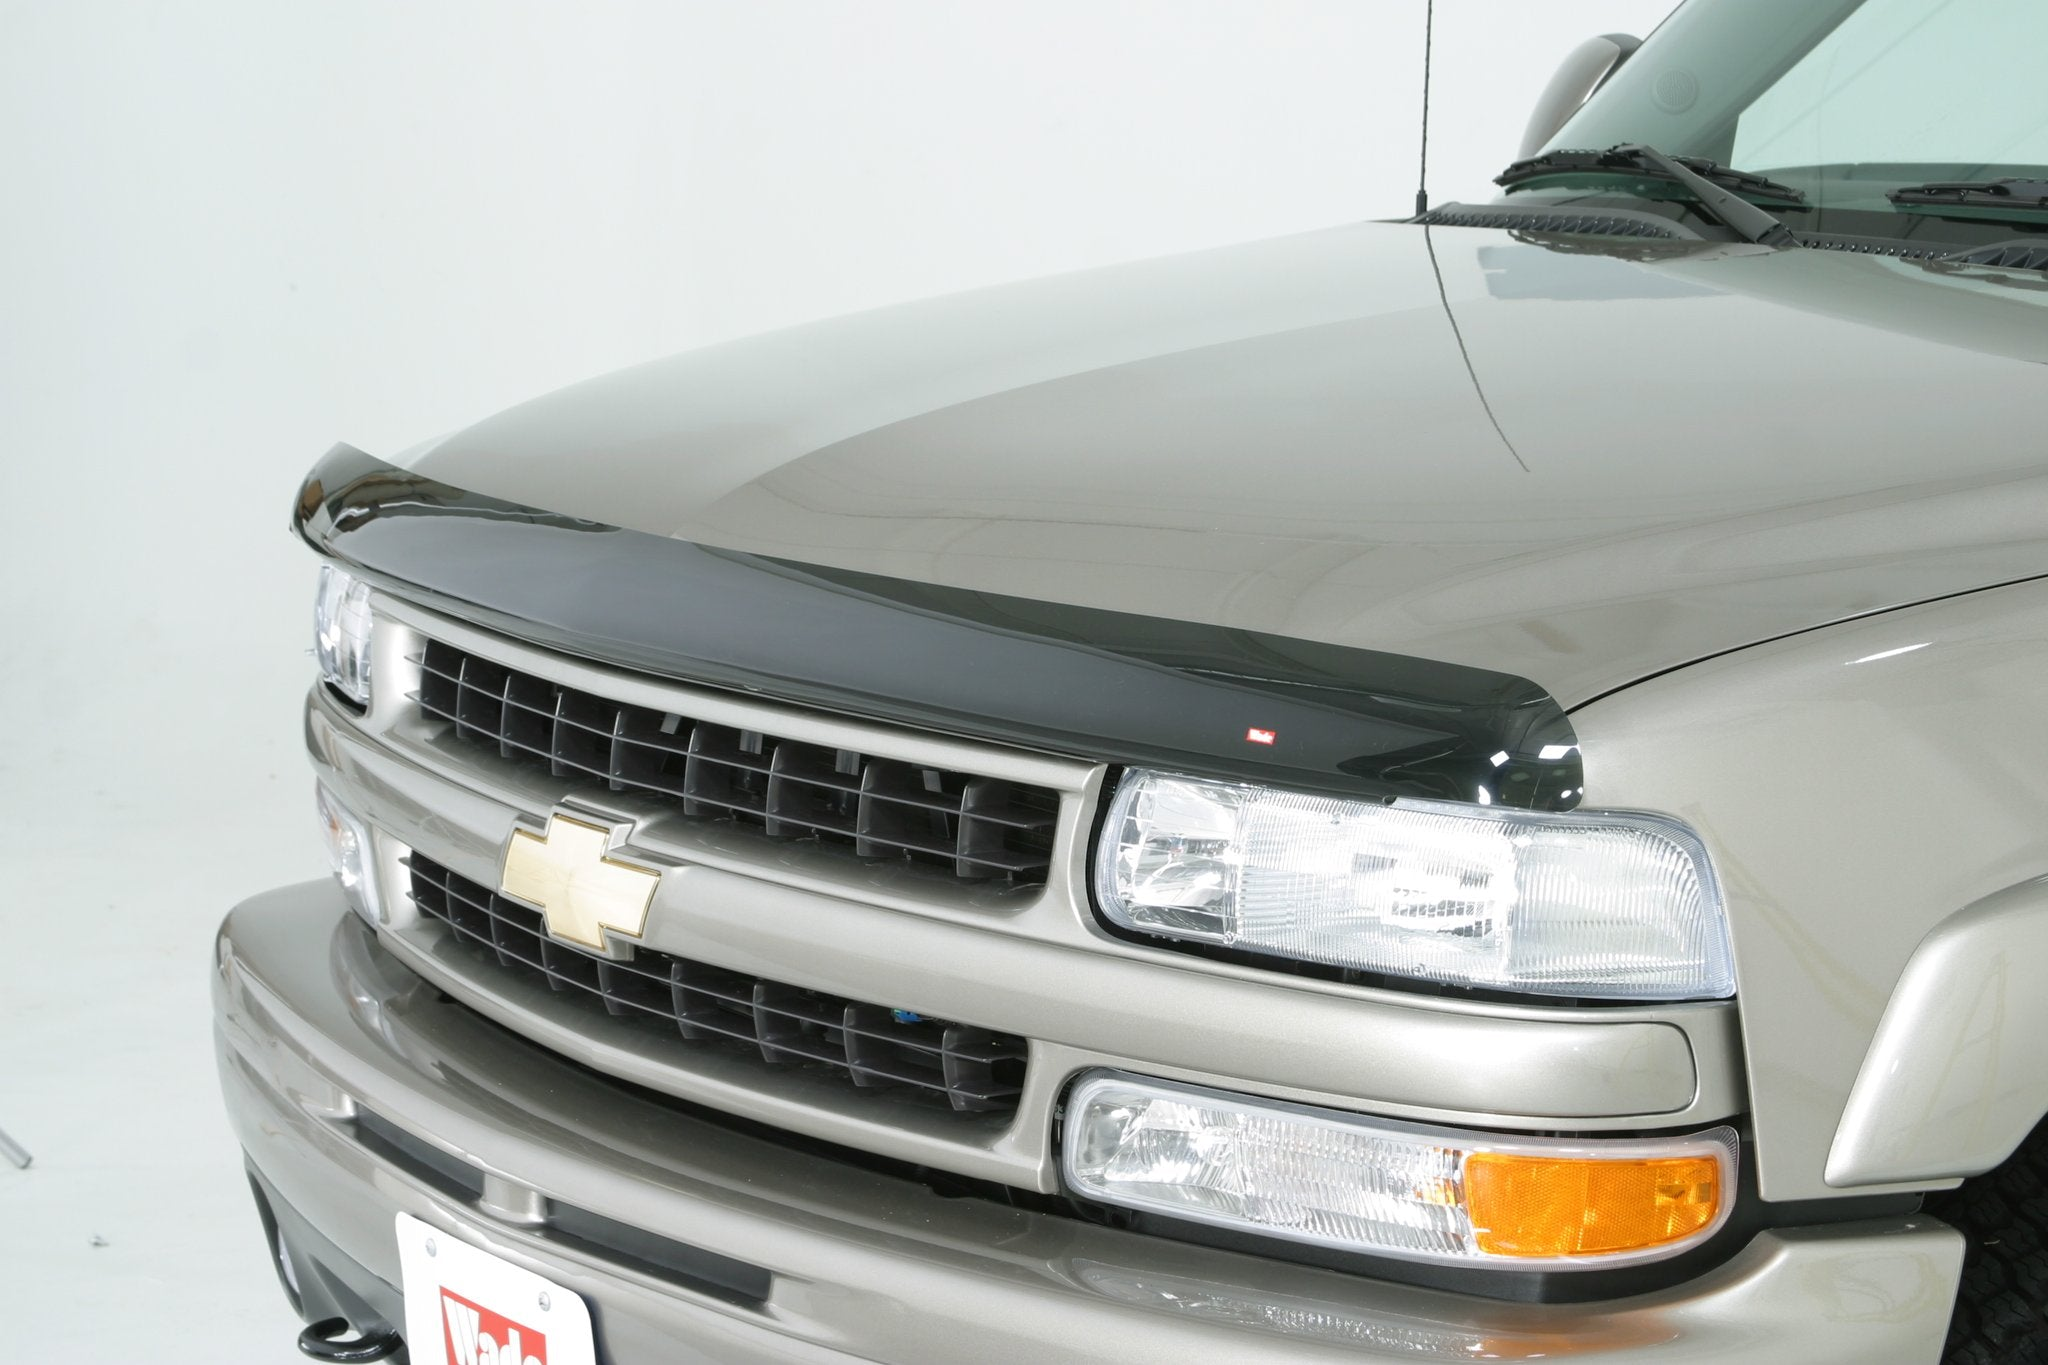 2004 GMC Jimmy S-Series Bug Shield